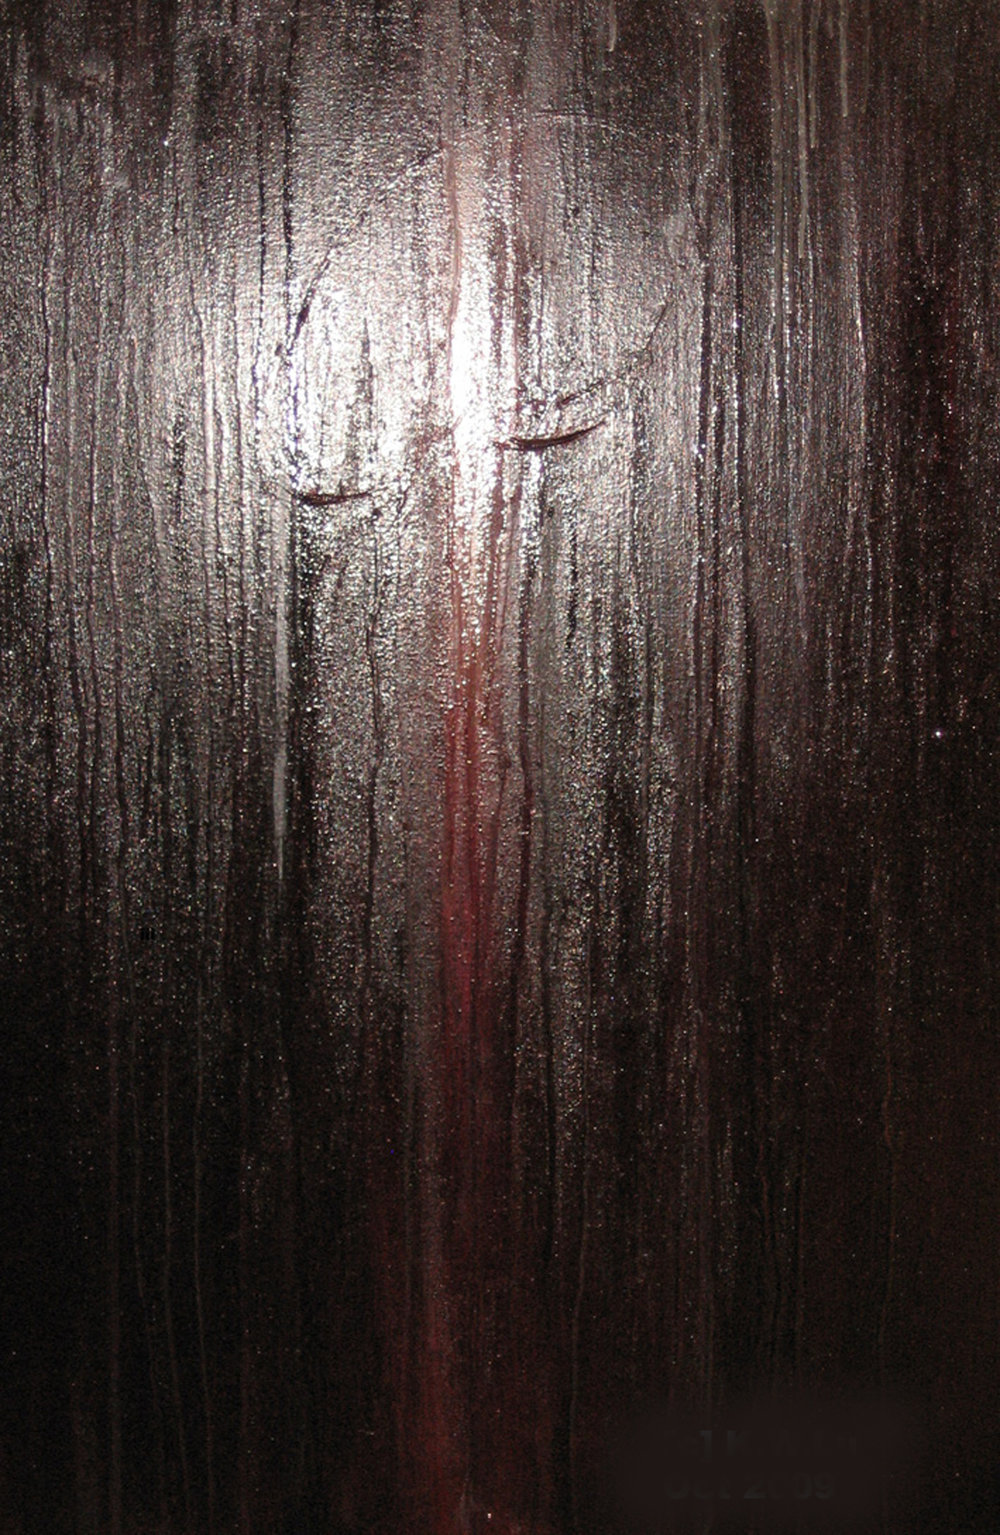 Virgin X 03-09 (Dripping Fluid Series 2003 - 2009)